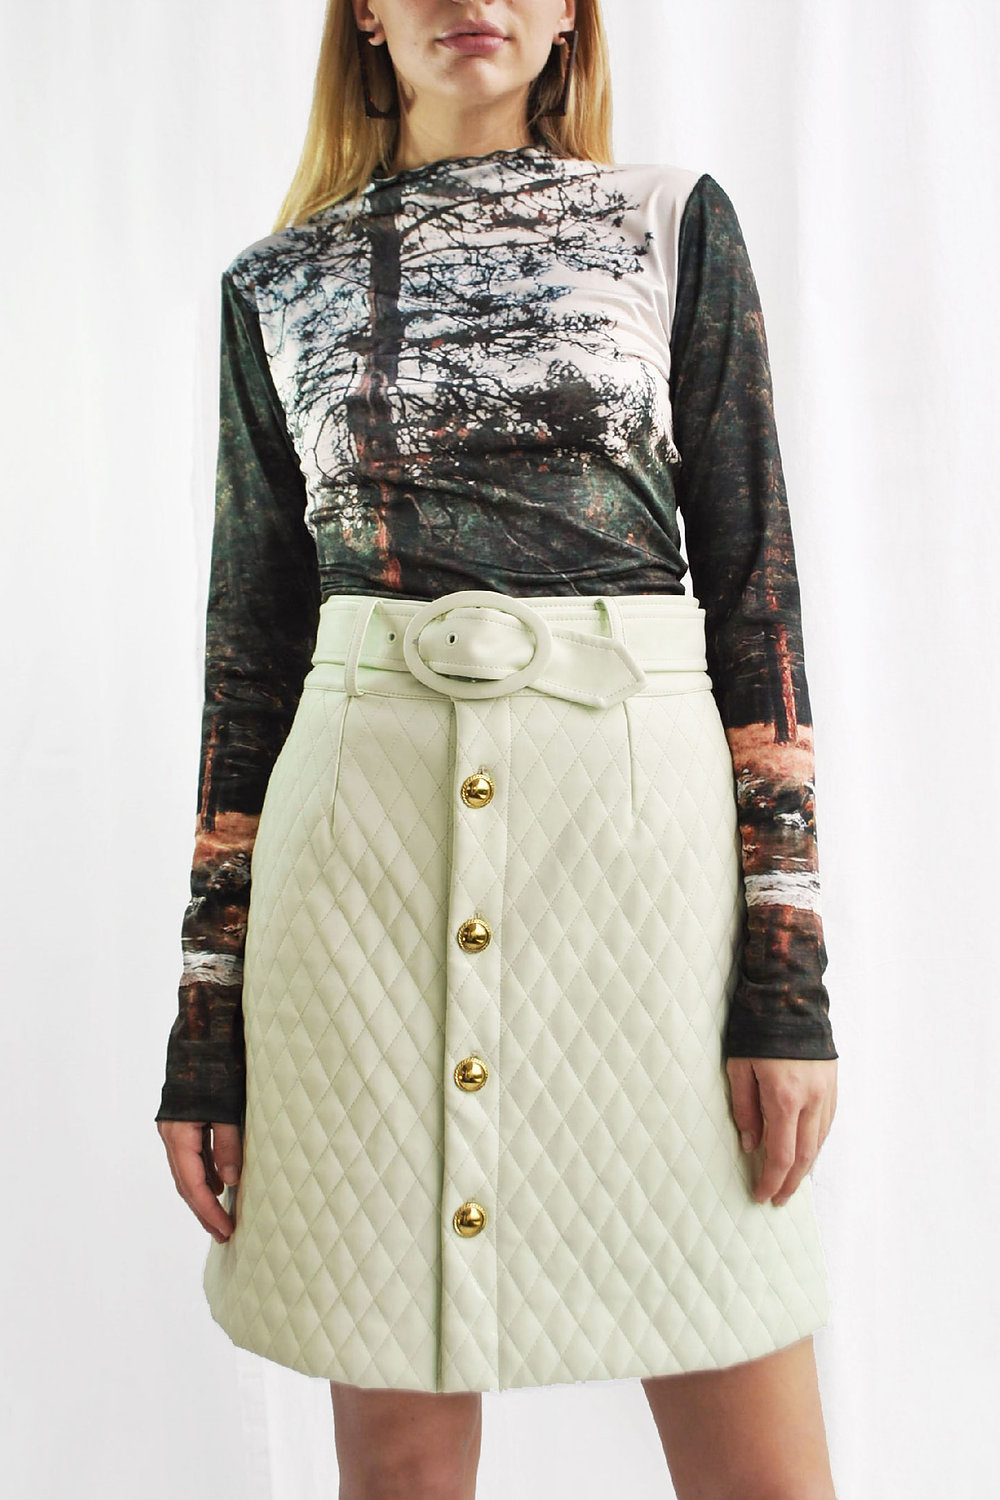 House of Sunny Mid Century Quilted Mini Skirt in Mint